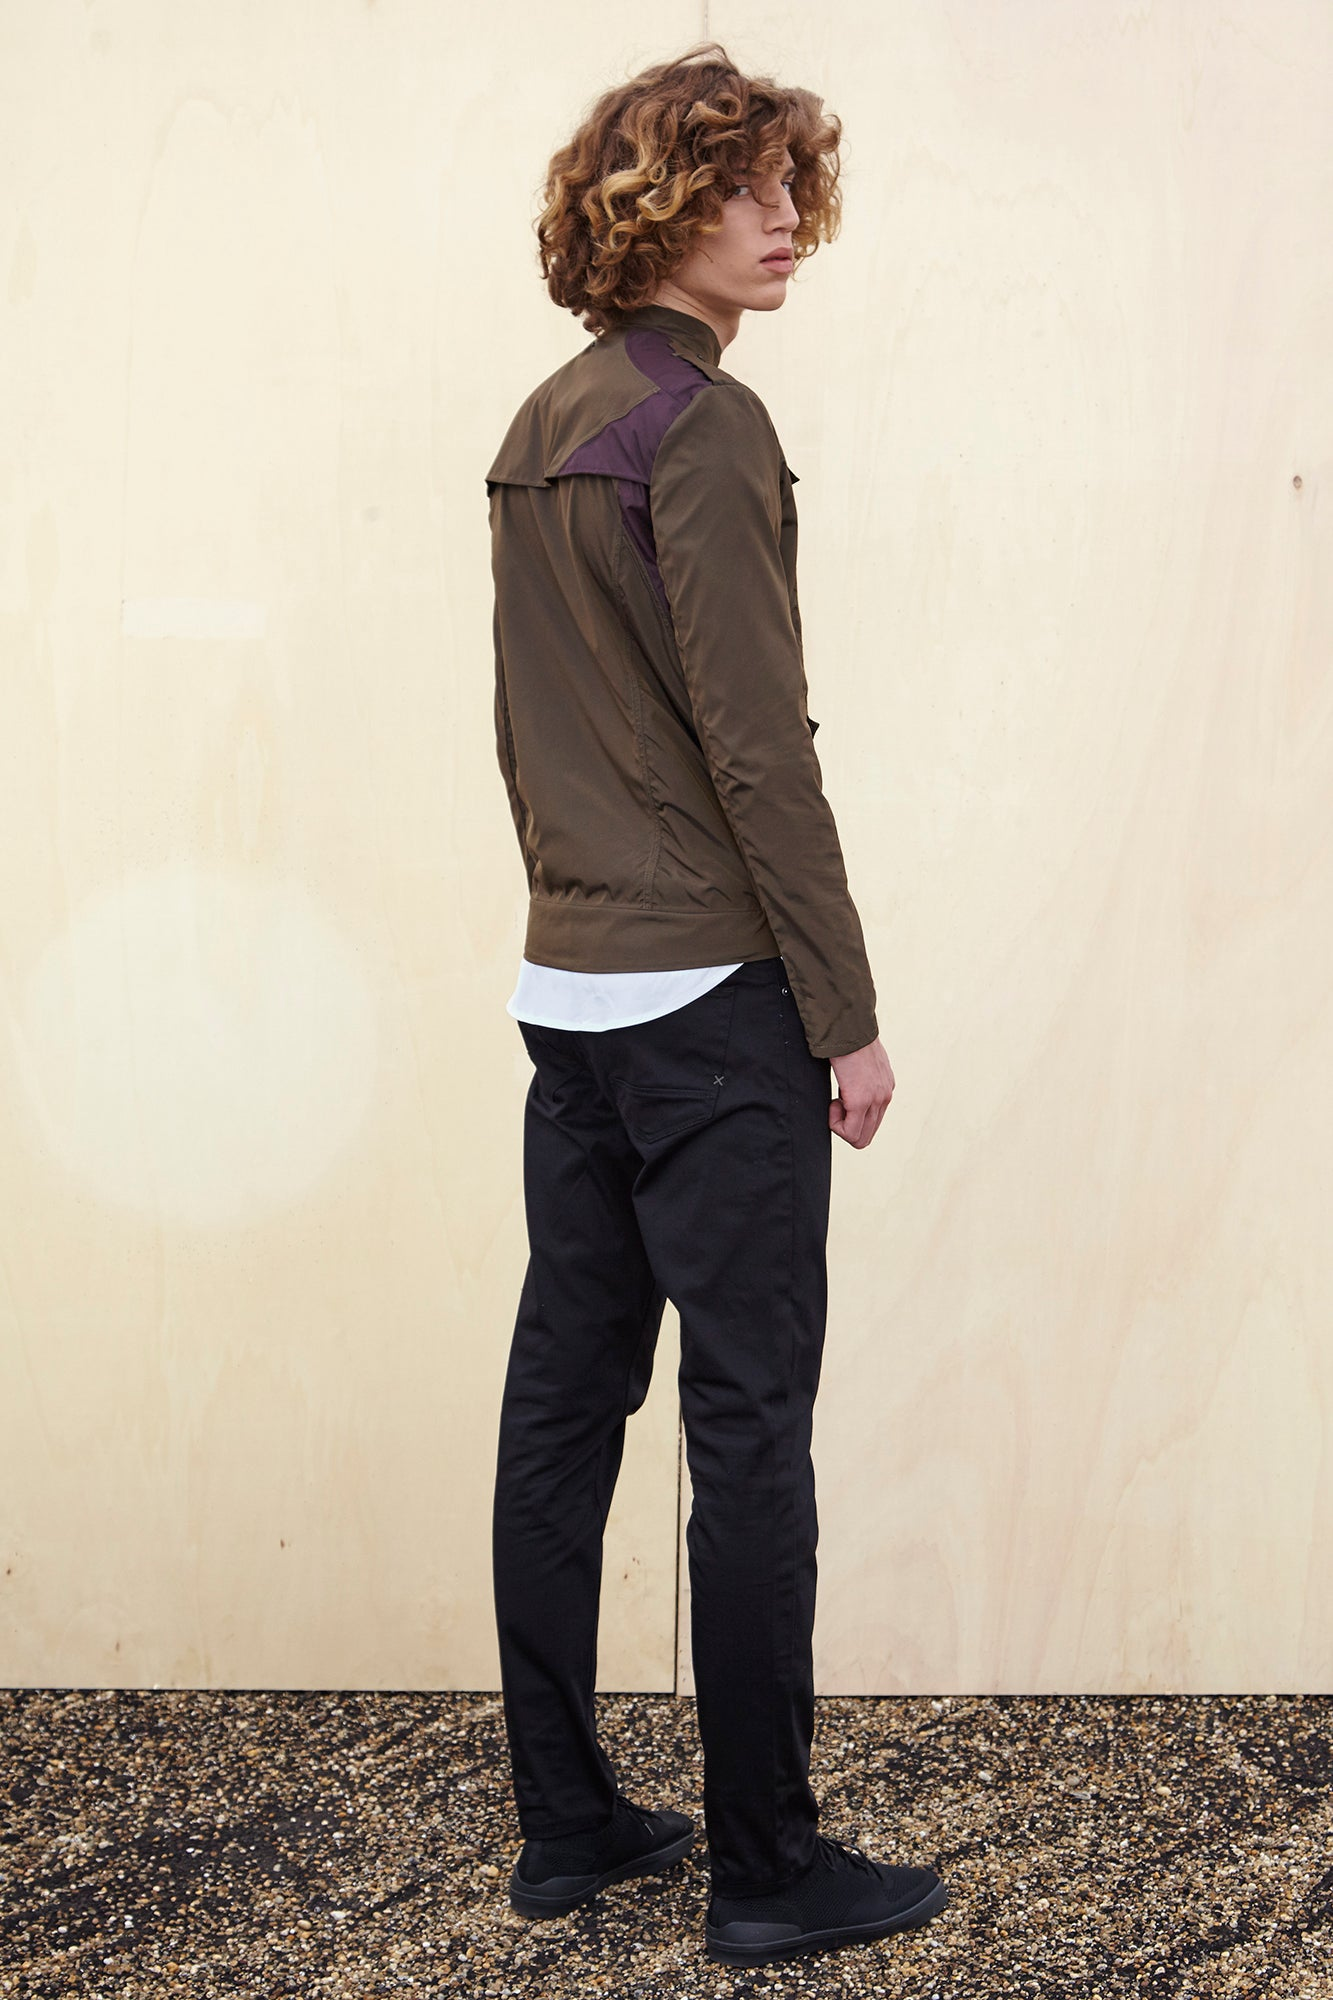 BOMBER JACKET - khaki raincoat for men